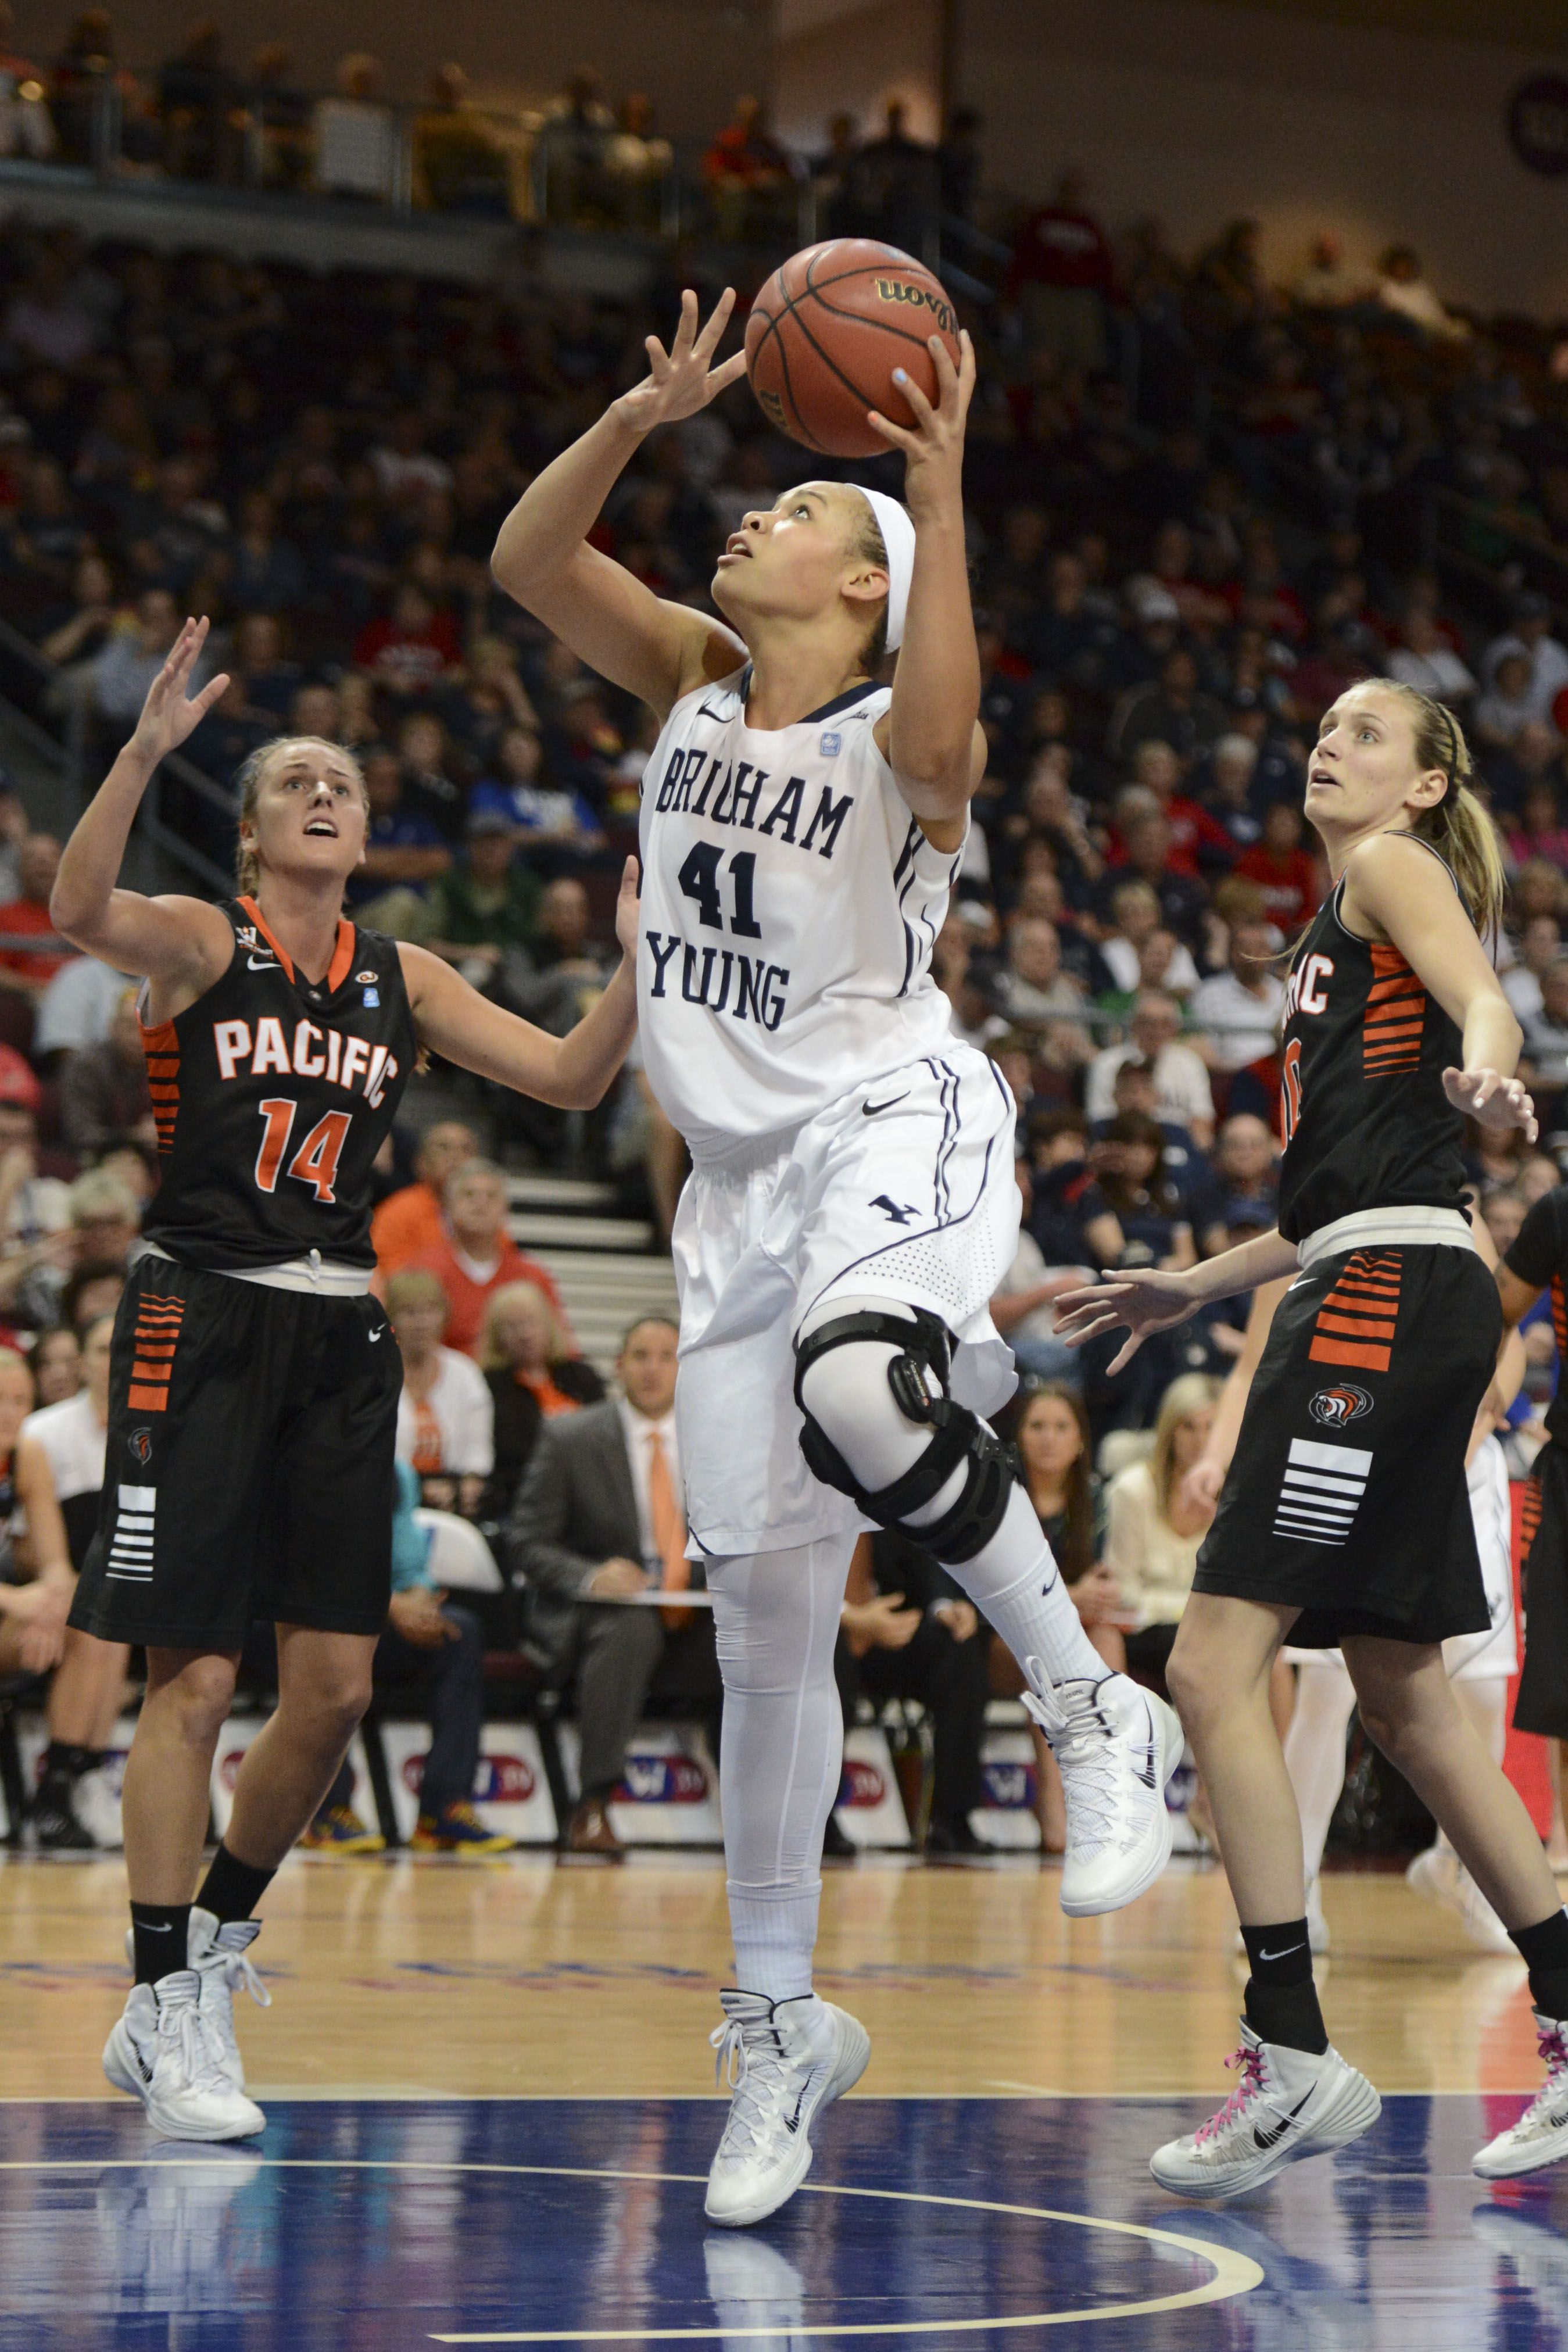 Morgan Bailey earned her 16th and 17th career double-doubles last week.